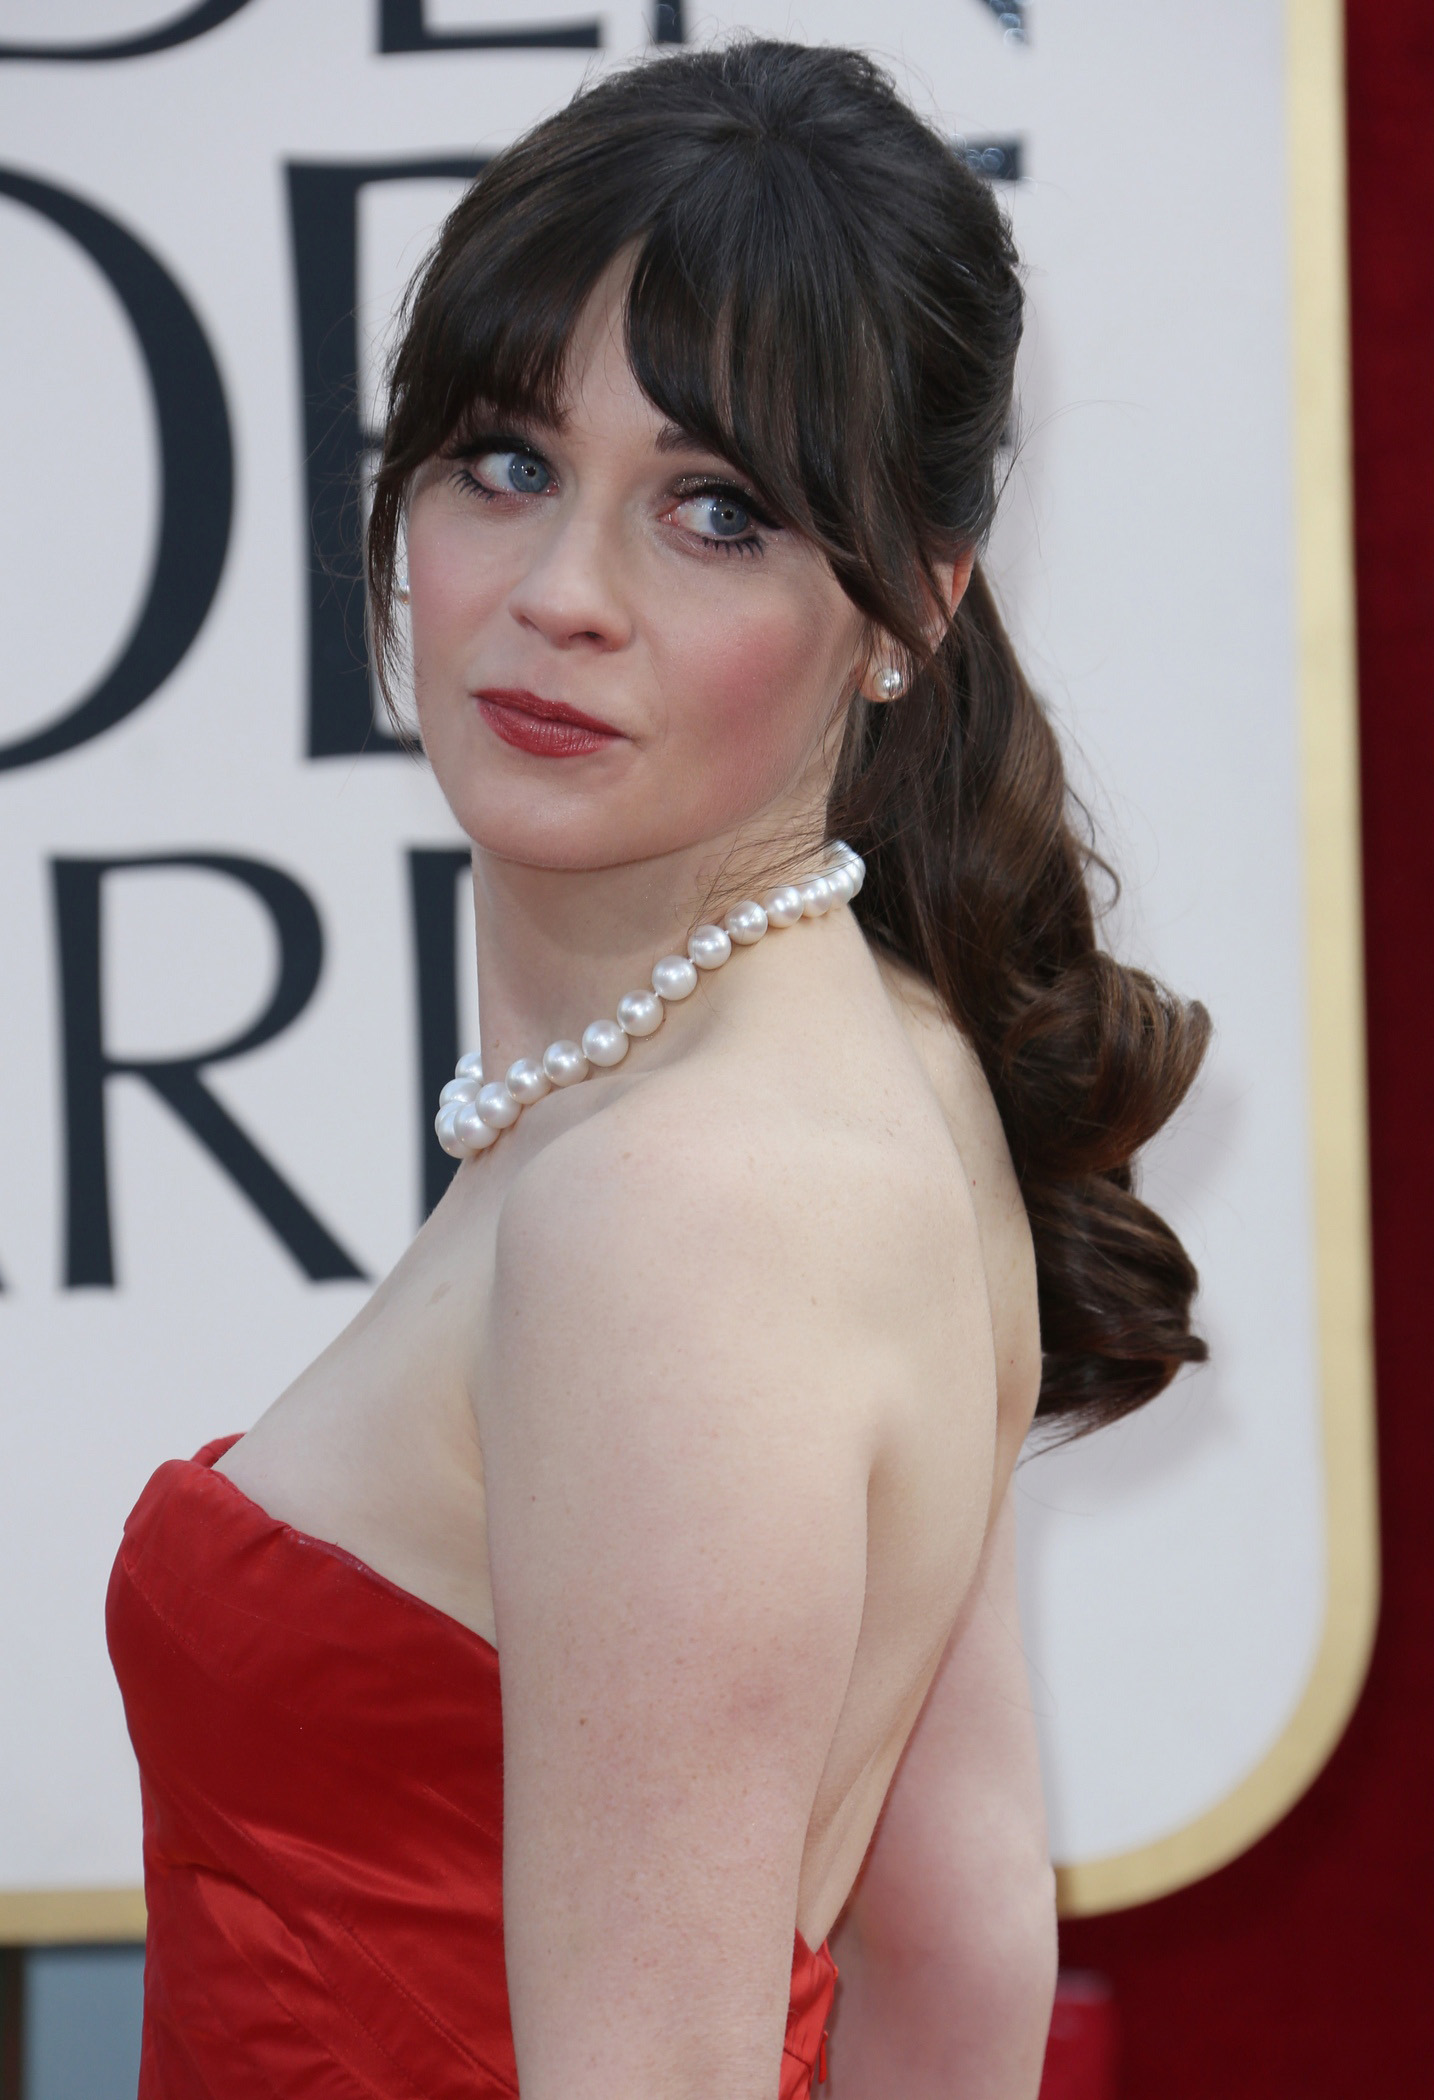 Zooey Deschanel nude 986